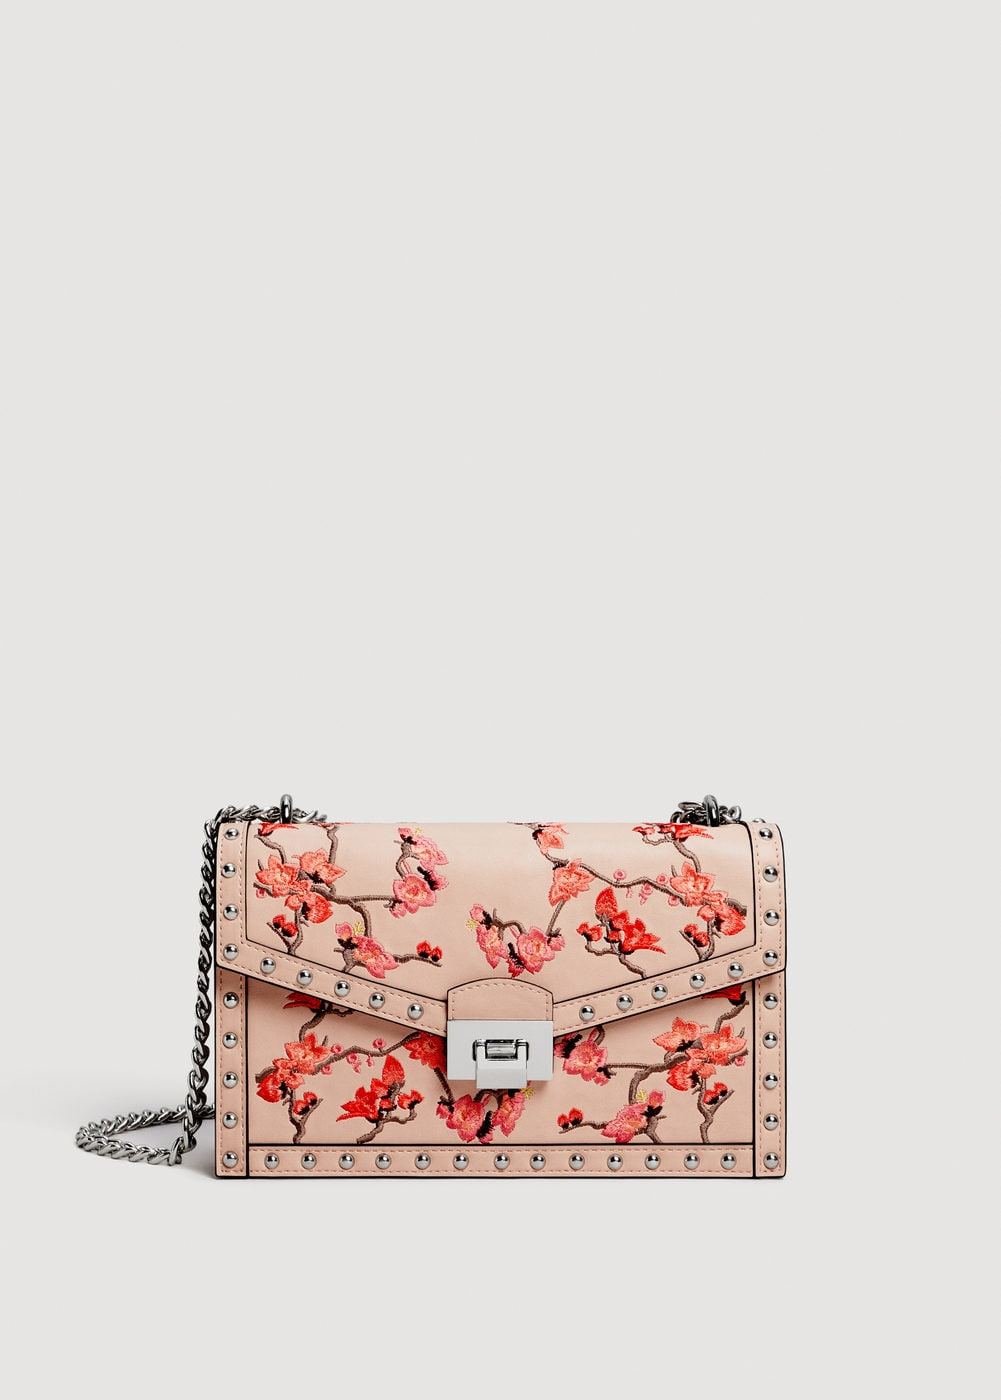 studded embroidery bag    SPRING CAN'T BE SPRING WITHOUT A FUN FLORAL PRINT & YES, EMBROIDERY IS STILL SUPER ON TREND THIS Season! GO for a more subtle hint of embroidery WITH SOFTER COLORS ON CLASSIC CROSS BODY BAGS FOR A STYLISH CLASSIC LOOK!